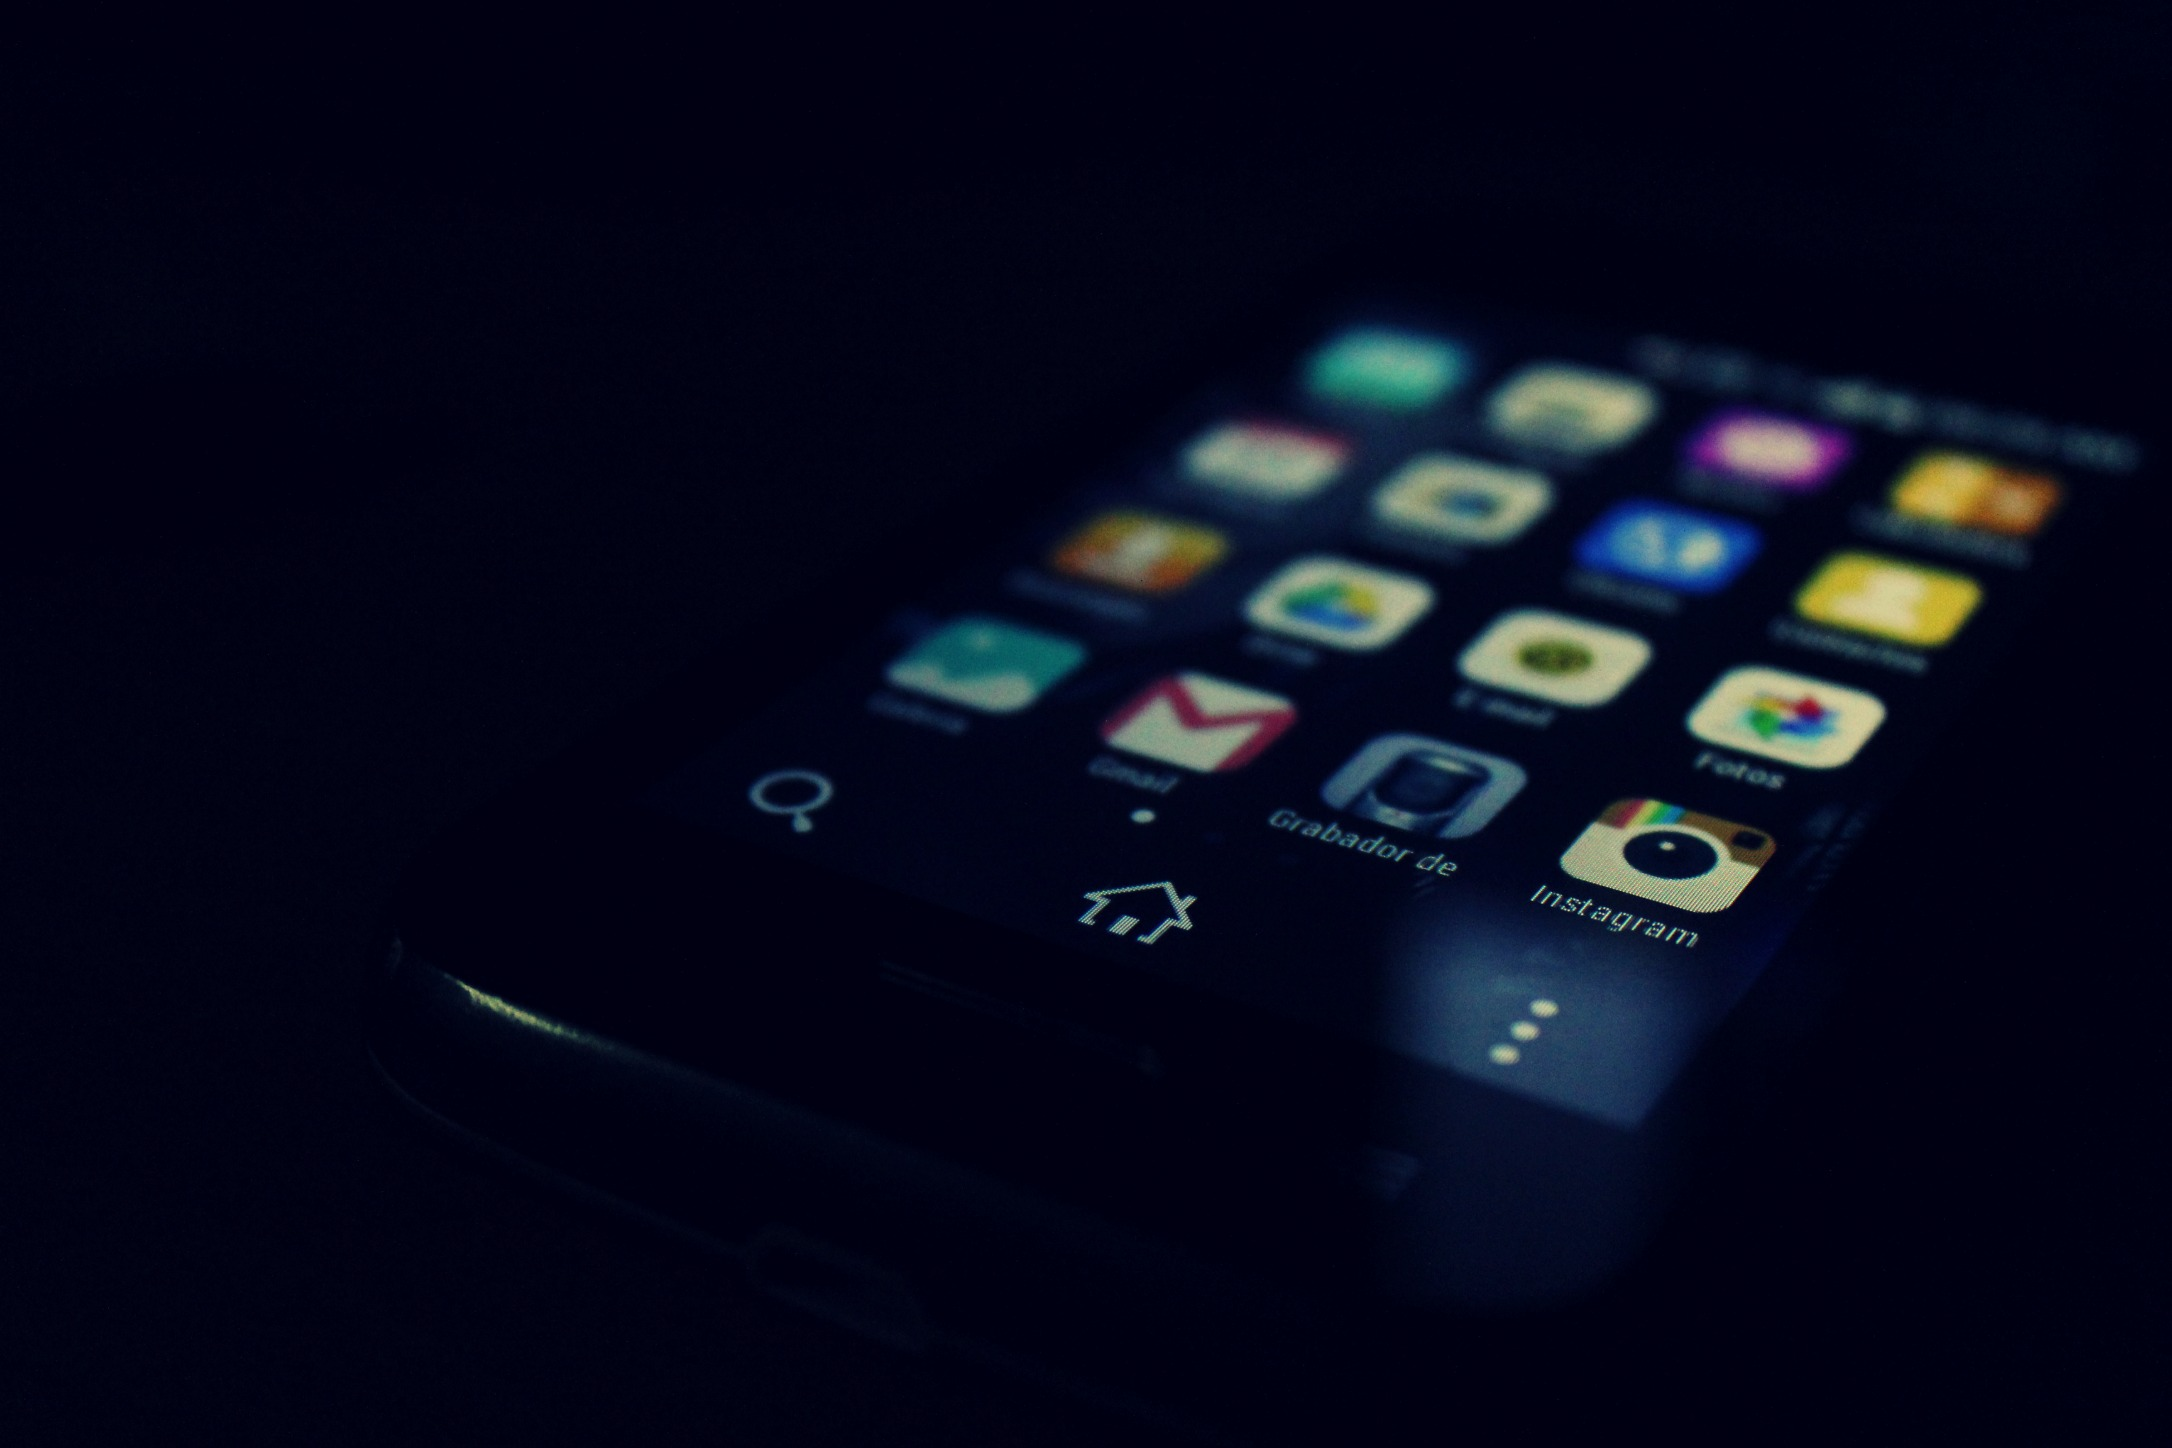 Top 3 apps you must have in your phone